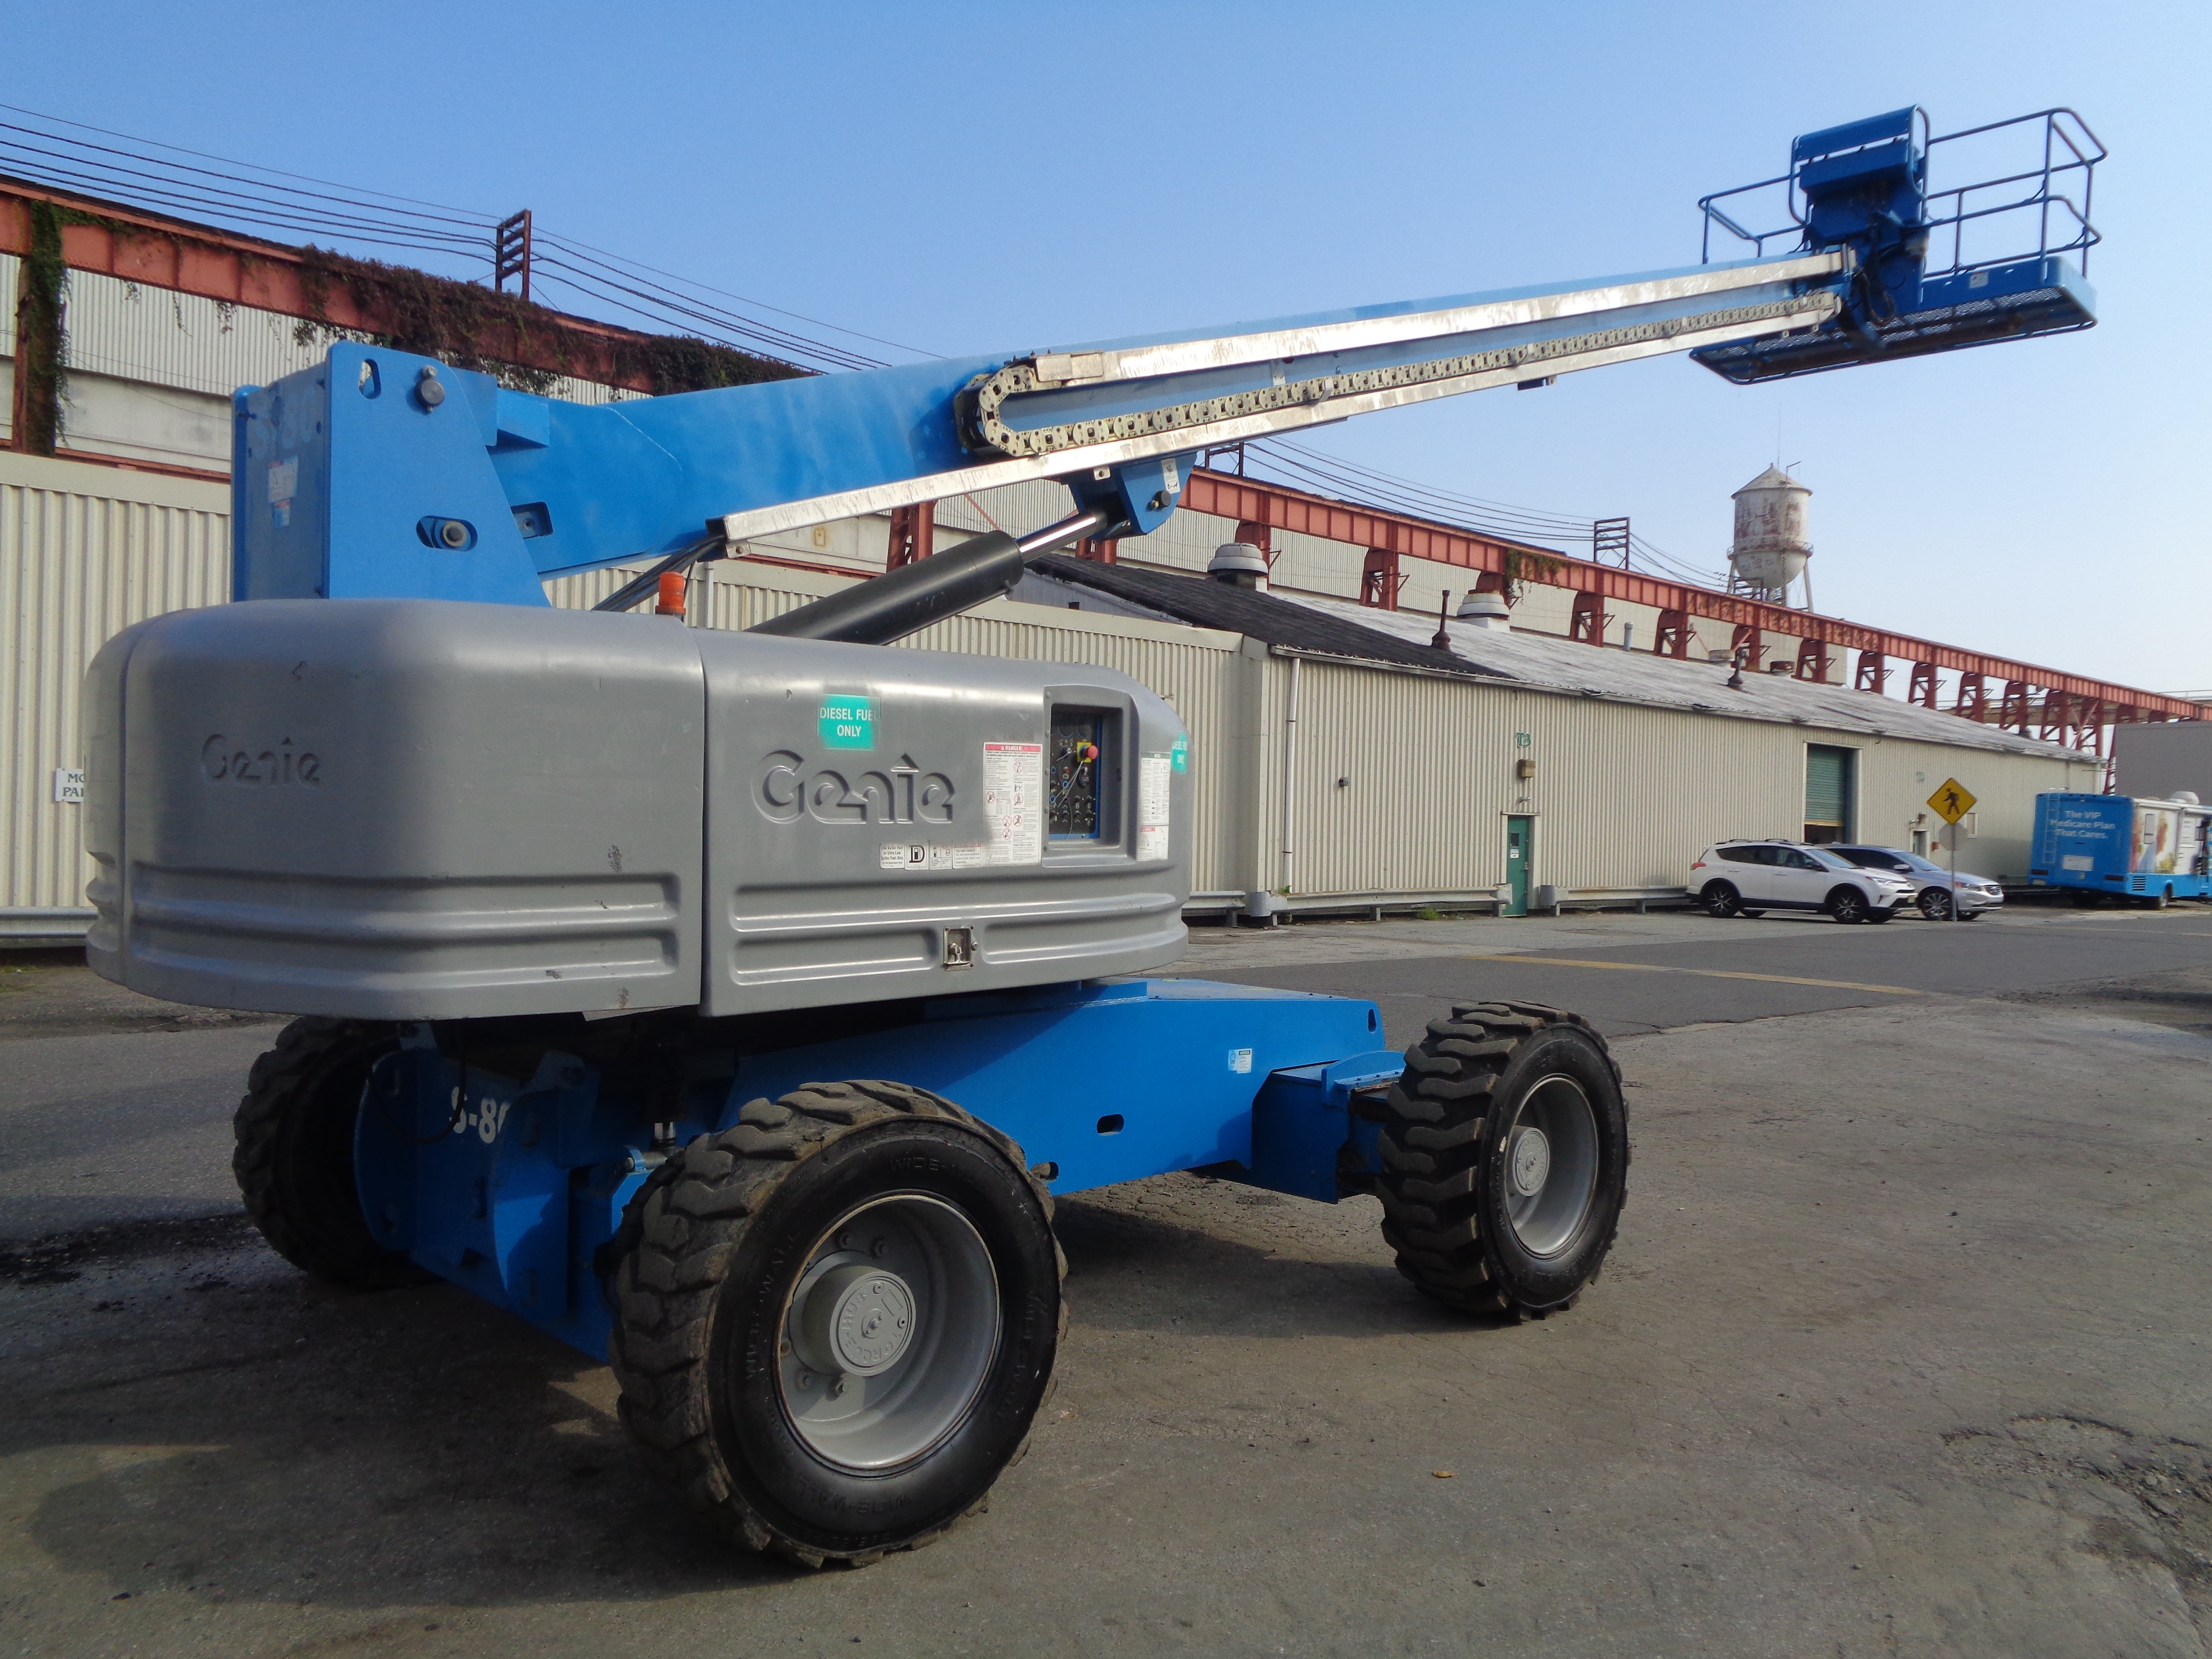 Genie S80 80ft Boom Lift - Image 13 of 22